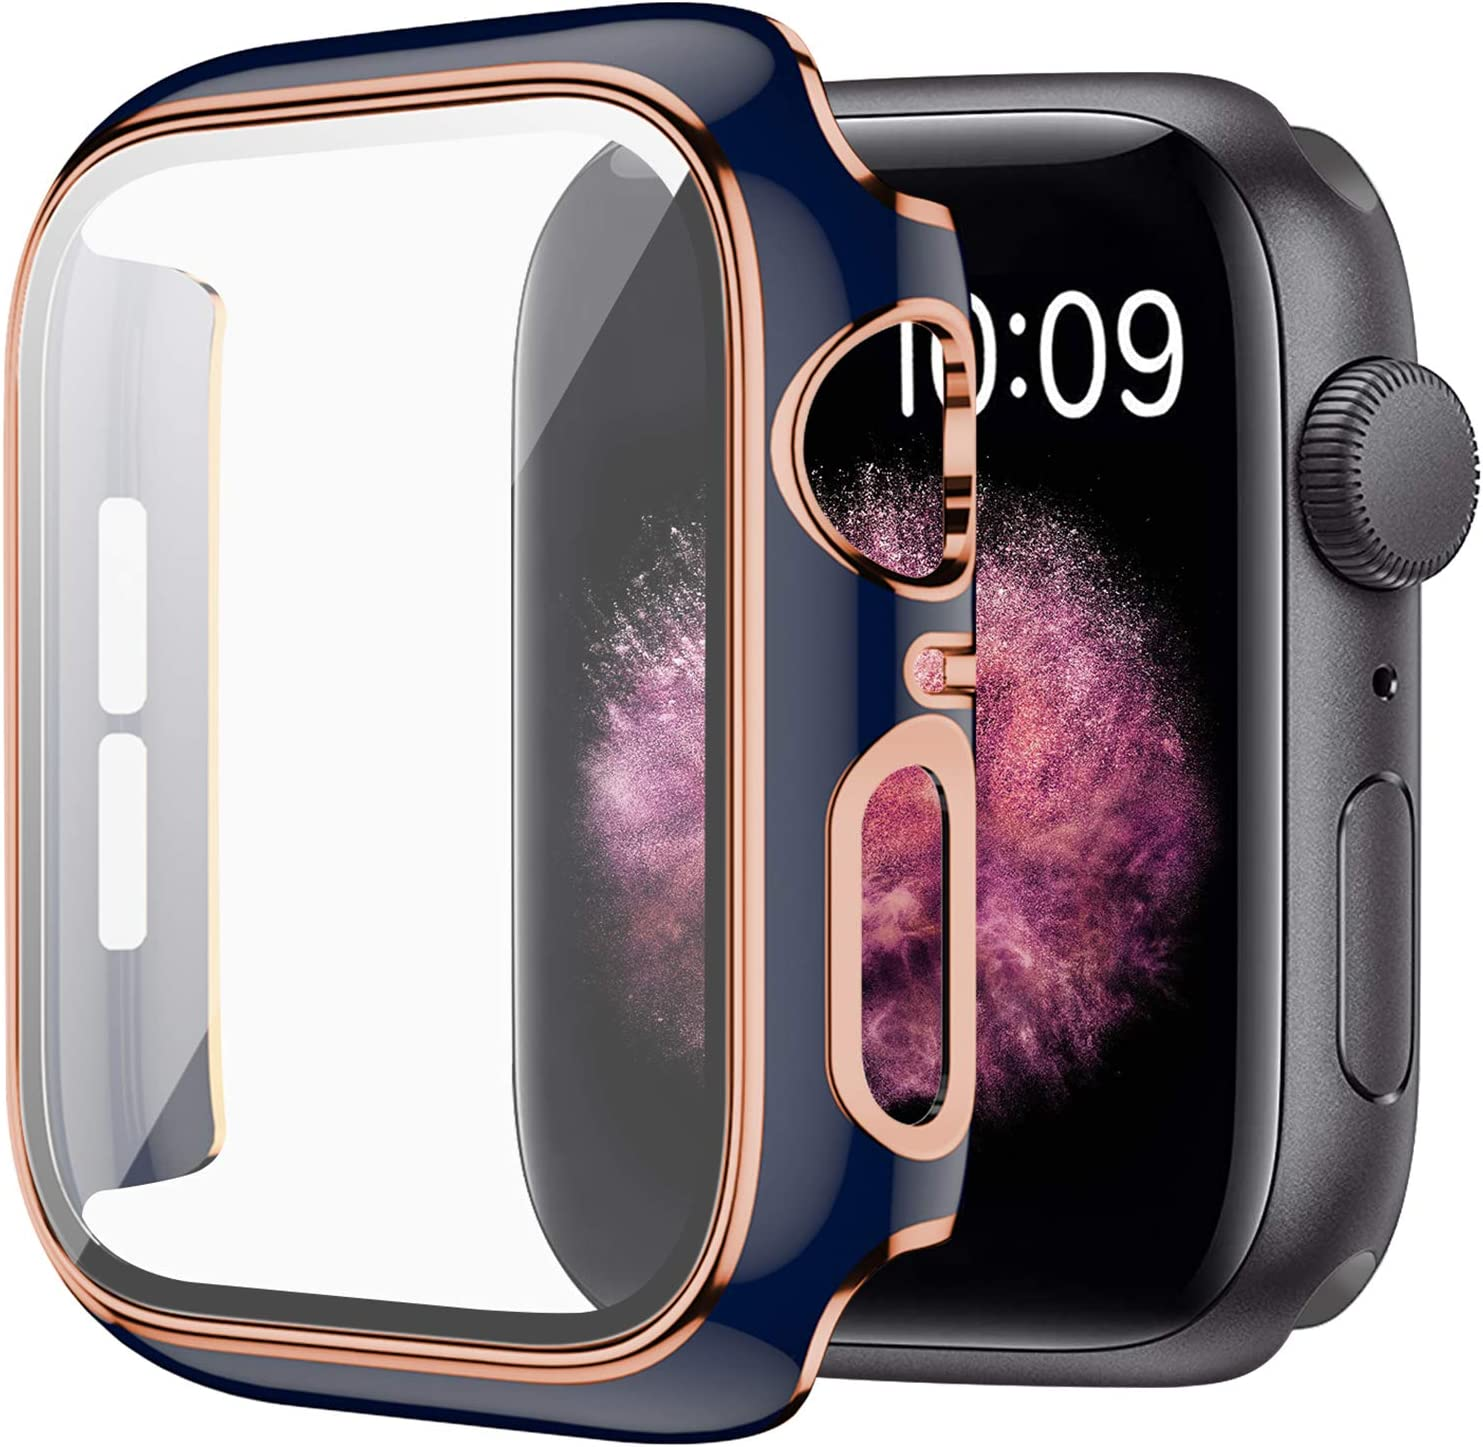 WETAL Hard Protective Cover Compatible with Apple Watch Case Series 6 / SE / Series 5 / Series 4 40mm 44mm with Built in HD Clear Tempered Glass Screen Protector (44mm Blue)